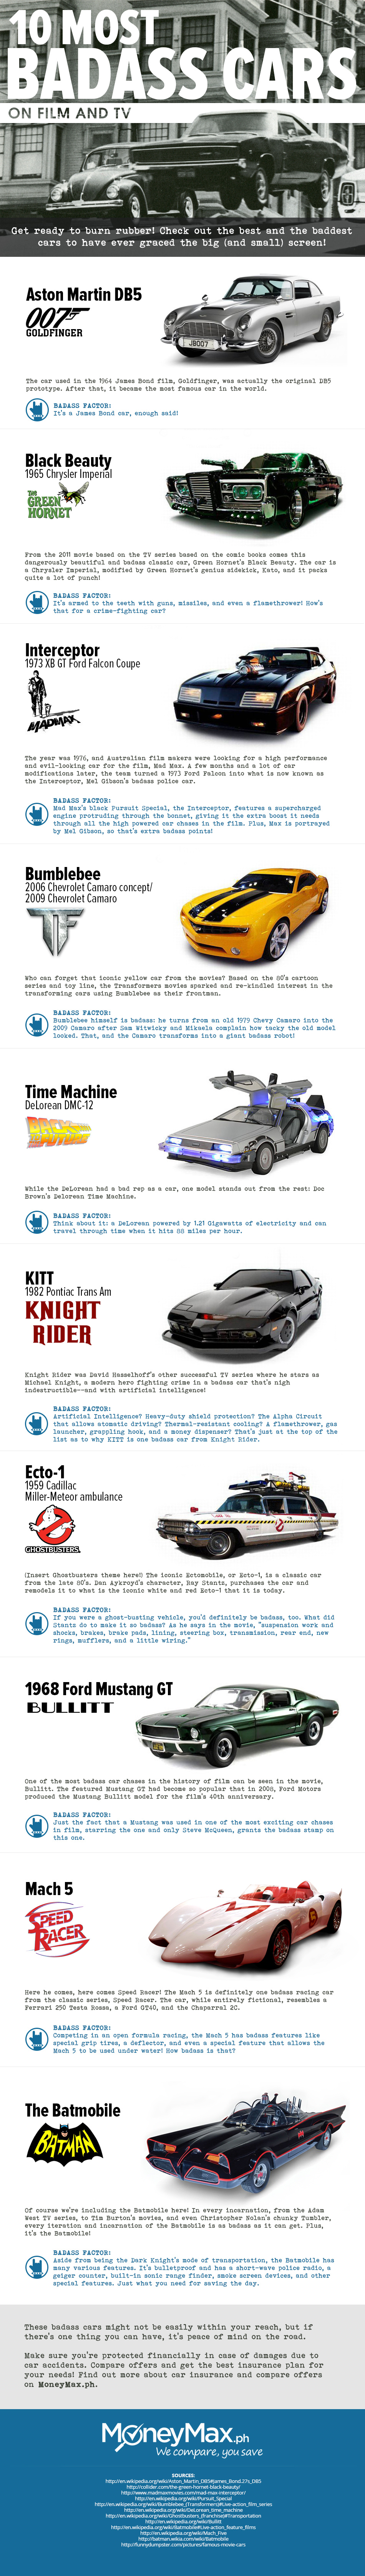 The Ten Most Badass Cars from Movies